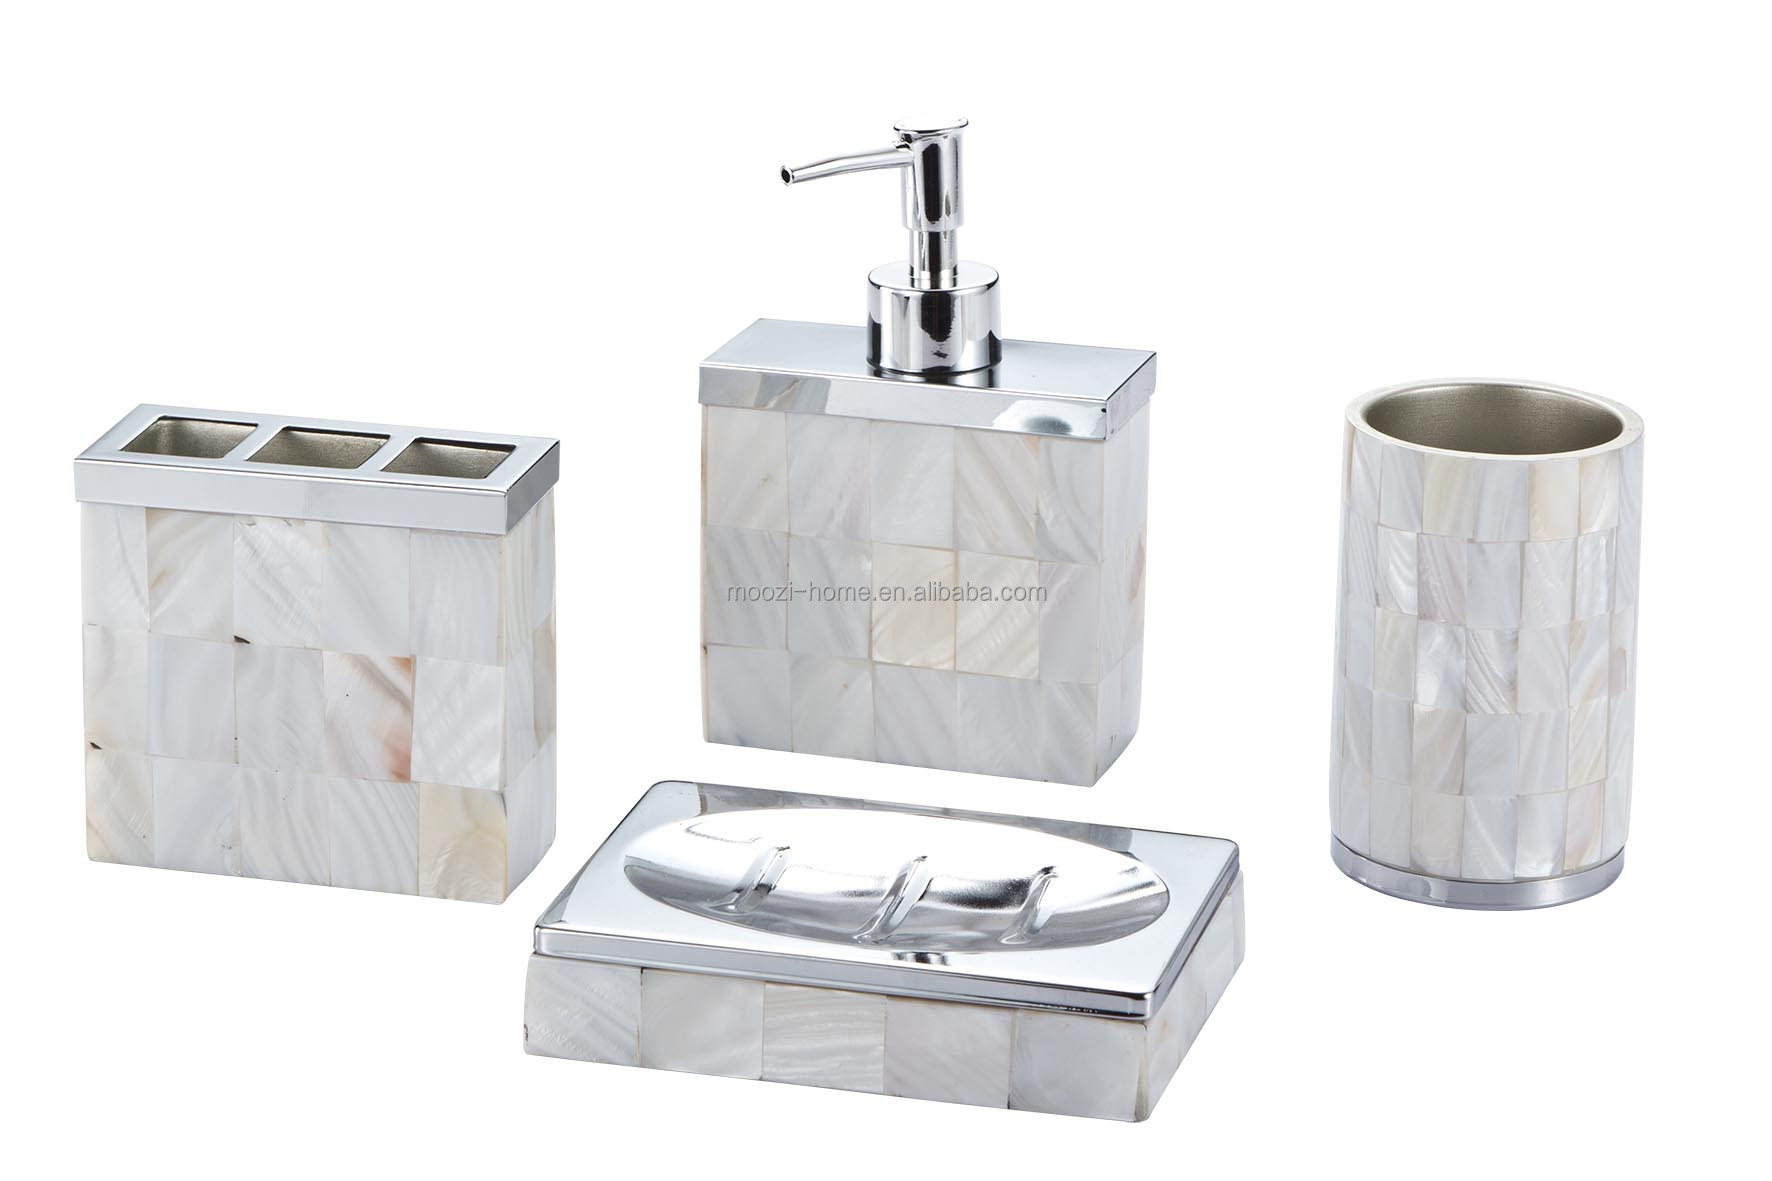 Silvery stone like resin bathroom set soap dispenser buy for Entire bathroom sets